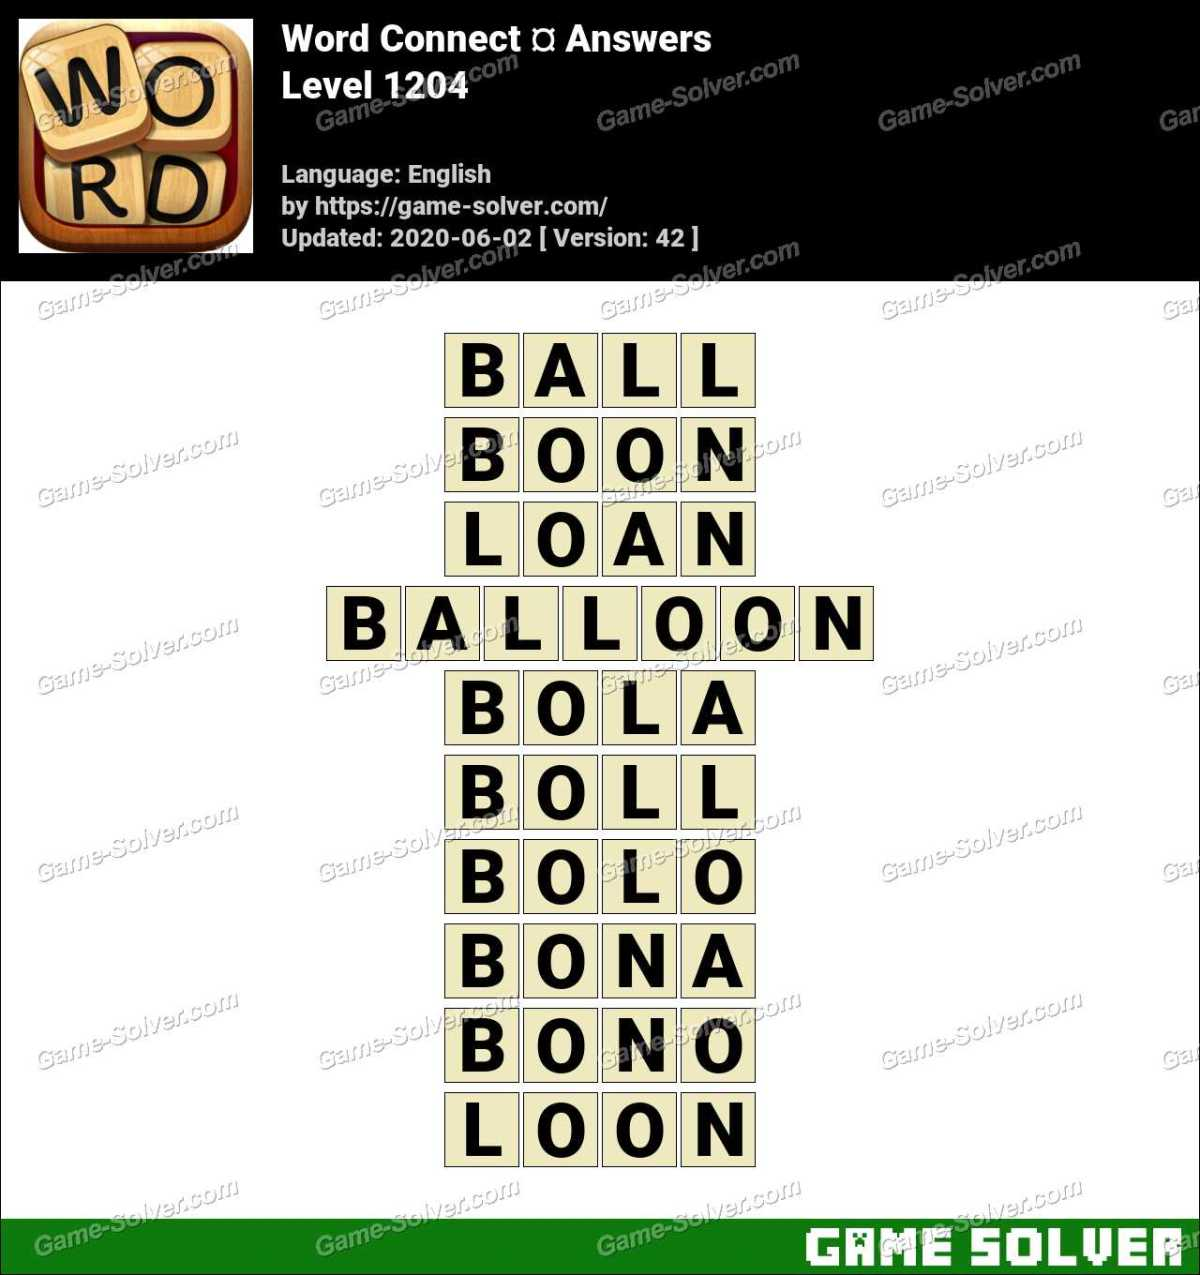 Word Connect Level 1204 Answers